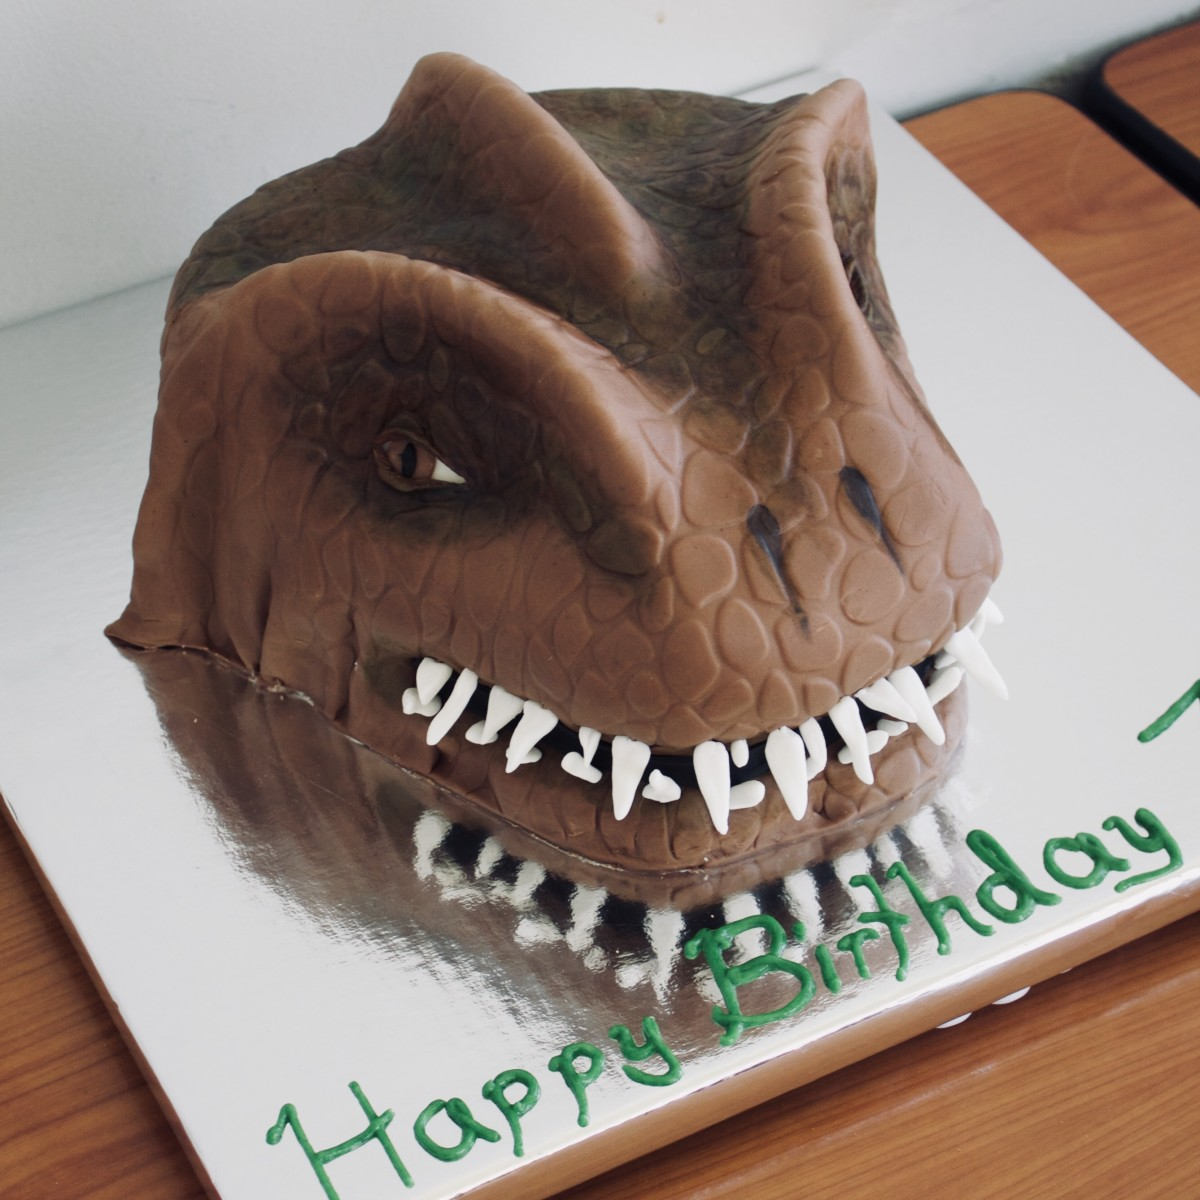 Tremendous How To Make A Fondant Covered T Rex Cake Delishably Personalised Birthday Cards Paralily Jamesorg